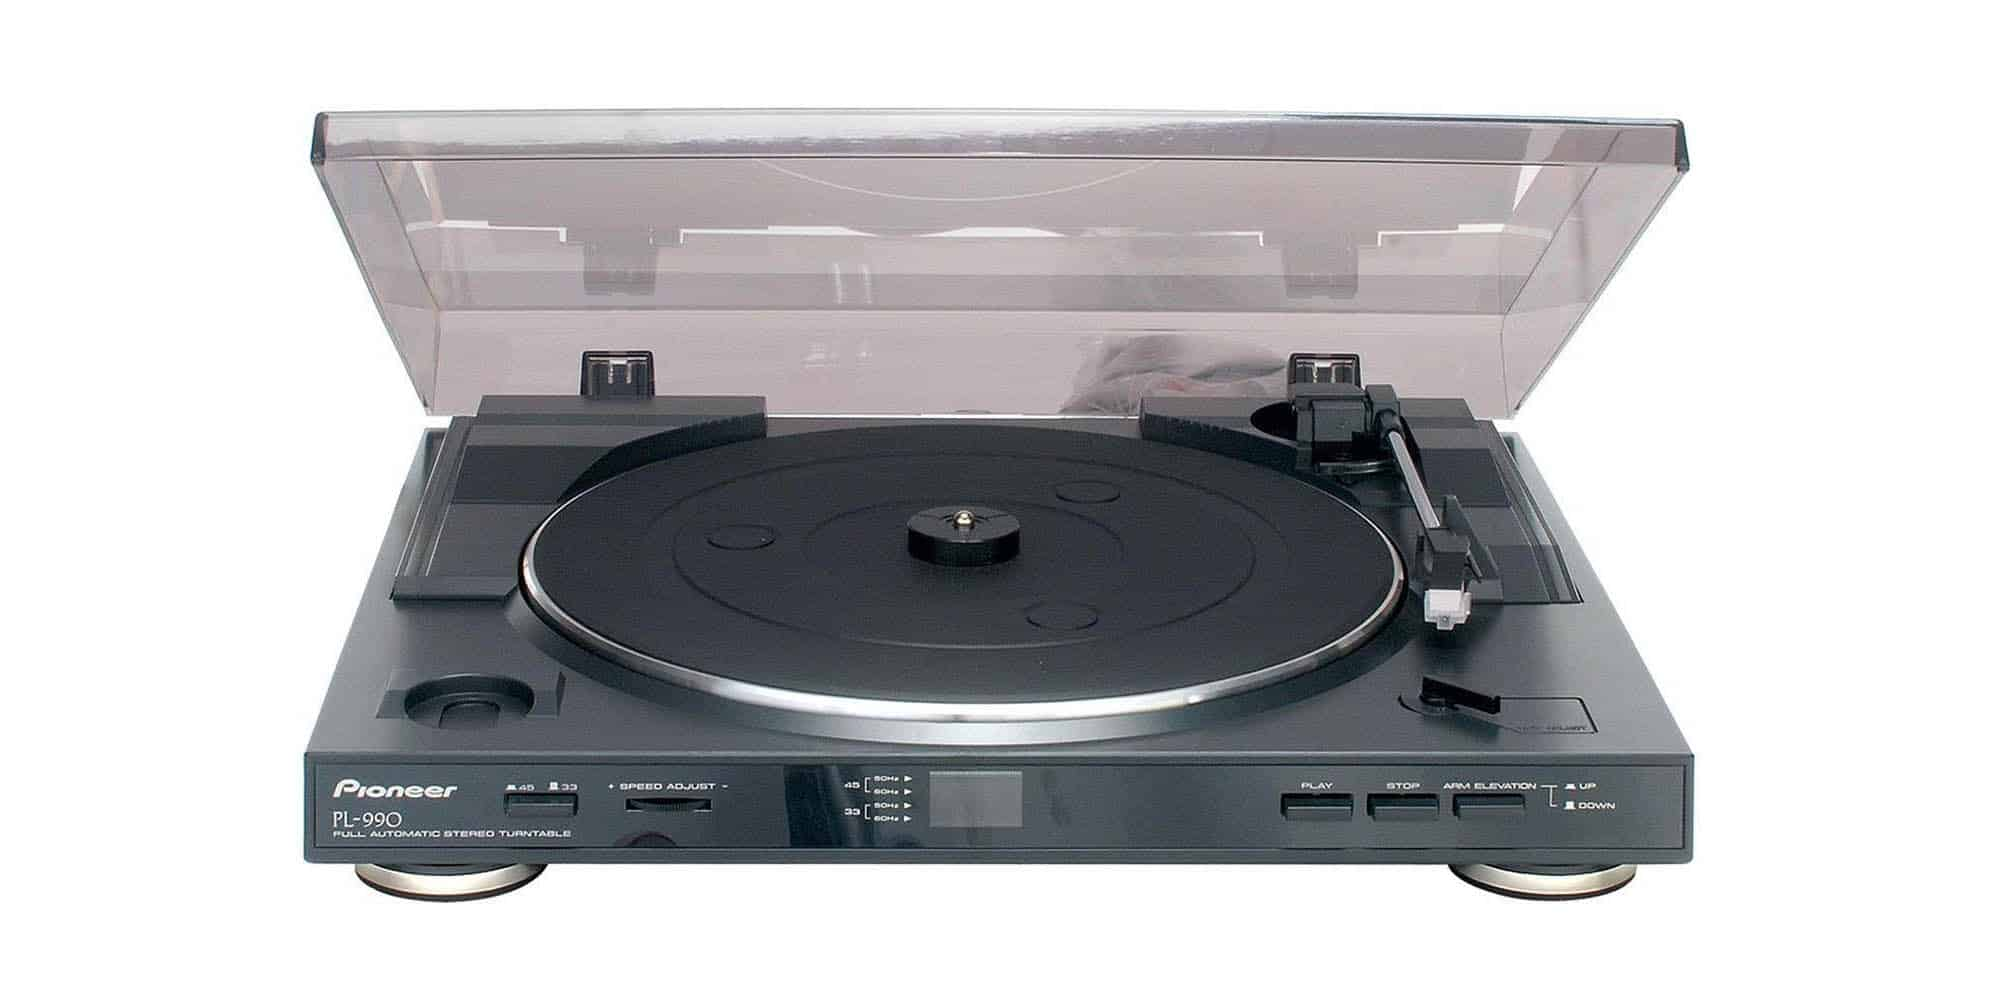 featured image for pioneer pl-990 review